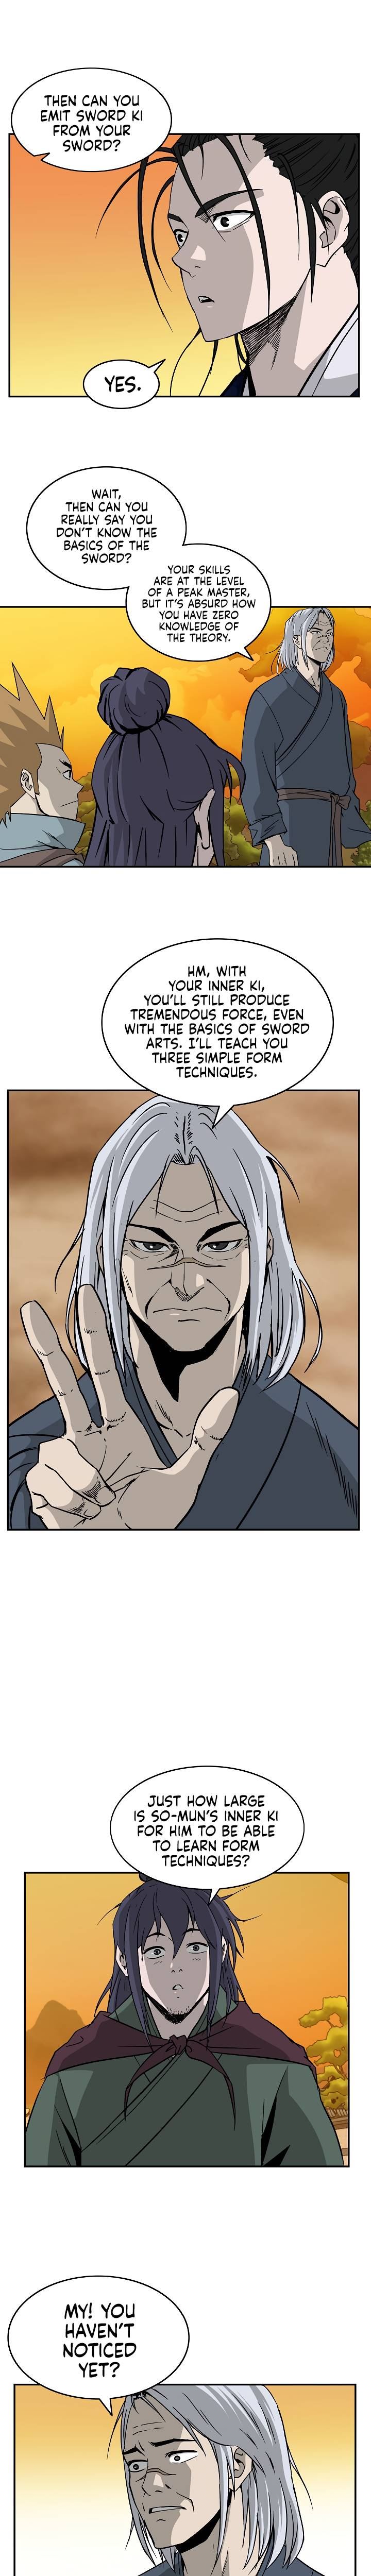 Bowblade Spirit - chapter 53 - #2